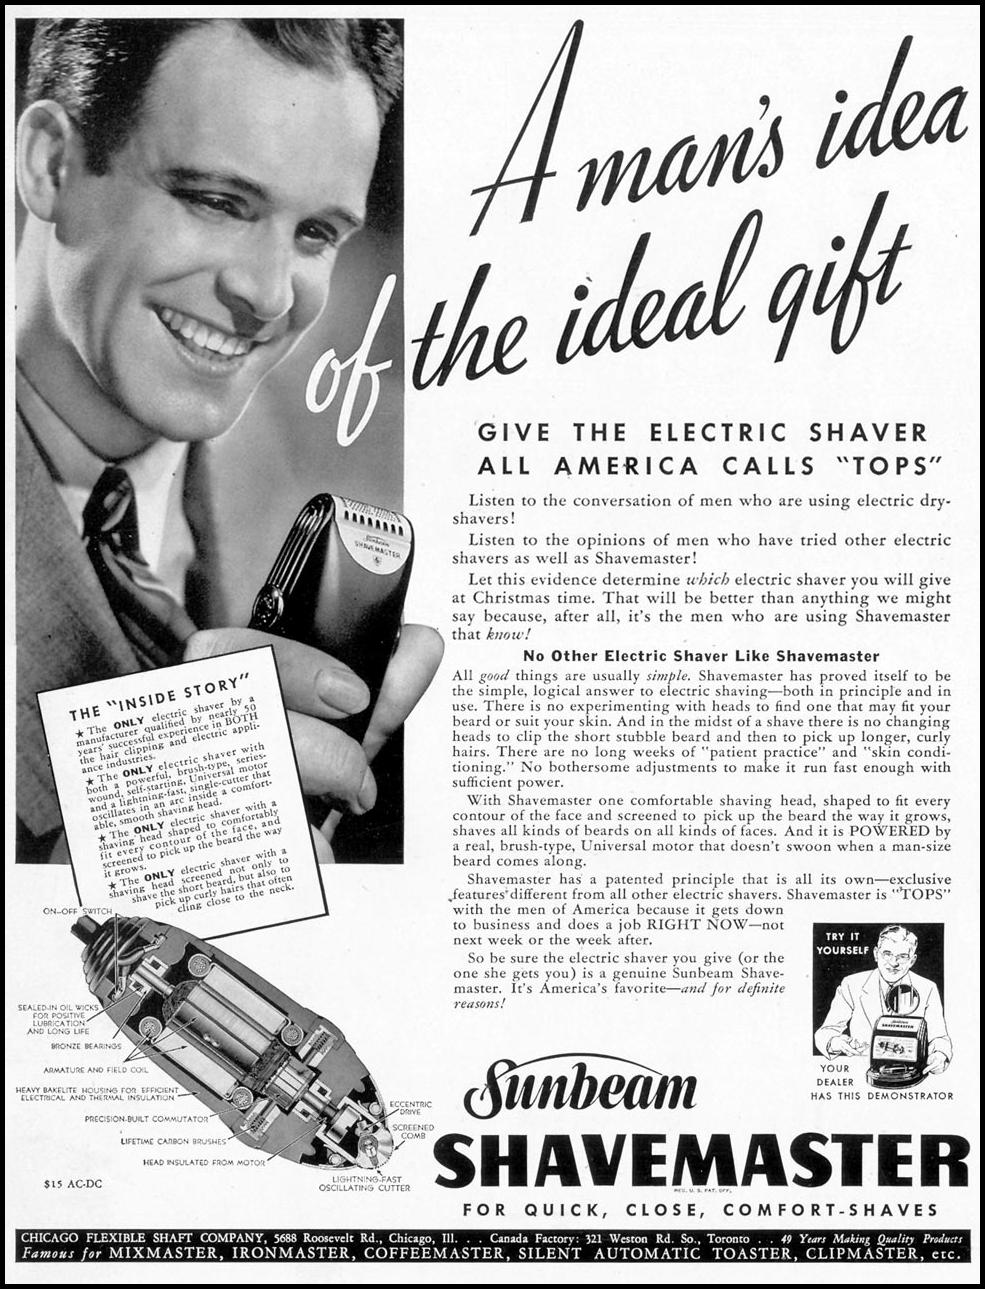 SUNBEAM SHAVEMASTER ELECTRIC RAZOR LIFE 12/12/1938 p. 1